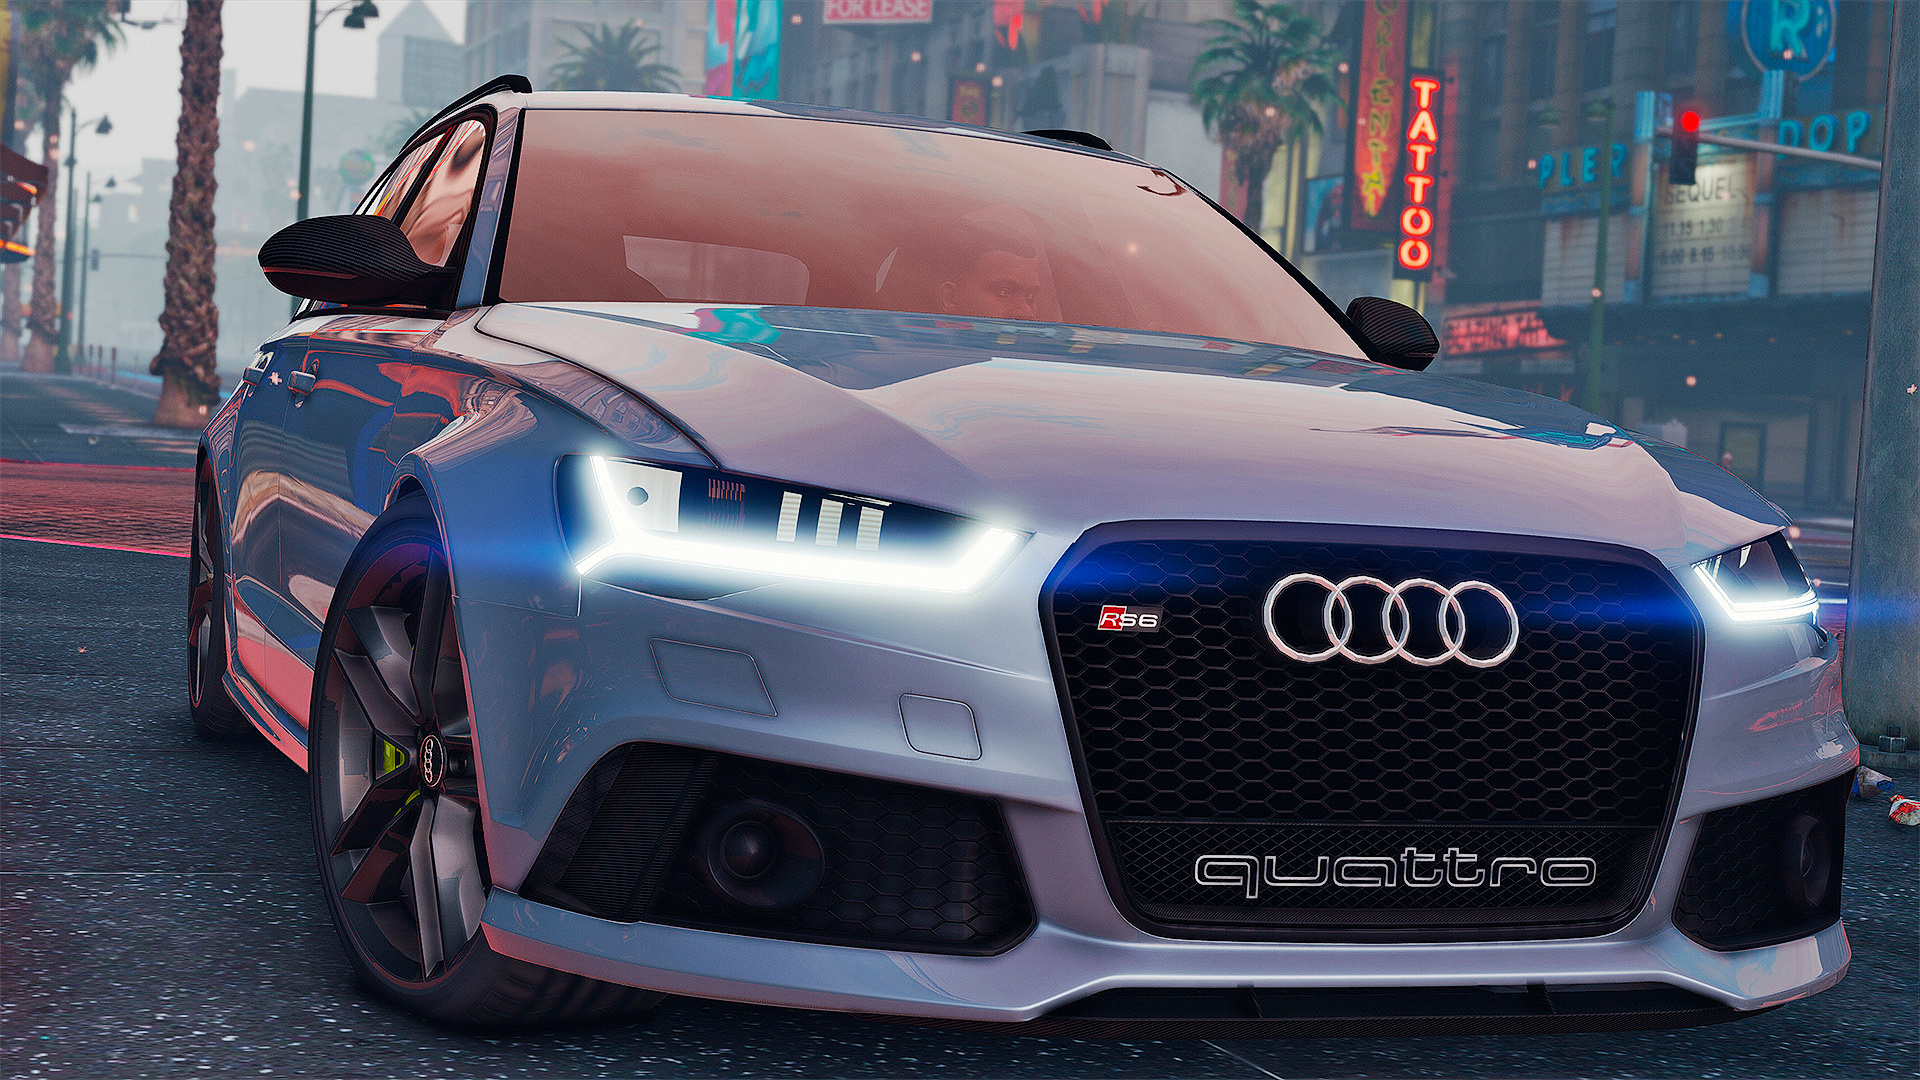 2015 audi rs6 c7 avant add on tuning hq gta5. Black Bedroom Furniture Sets. Home Design Ideas